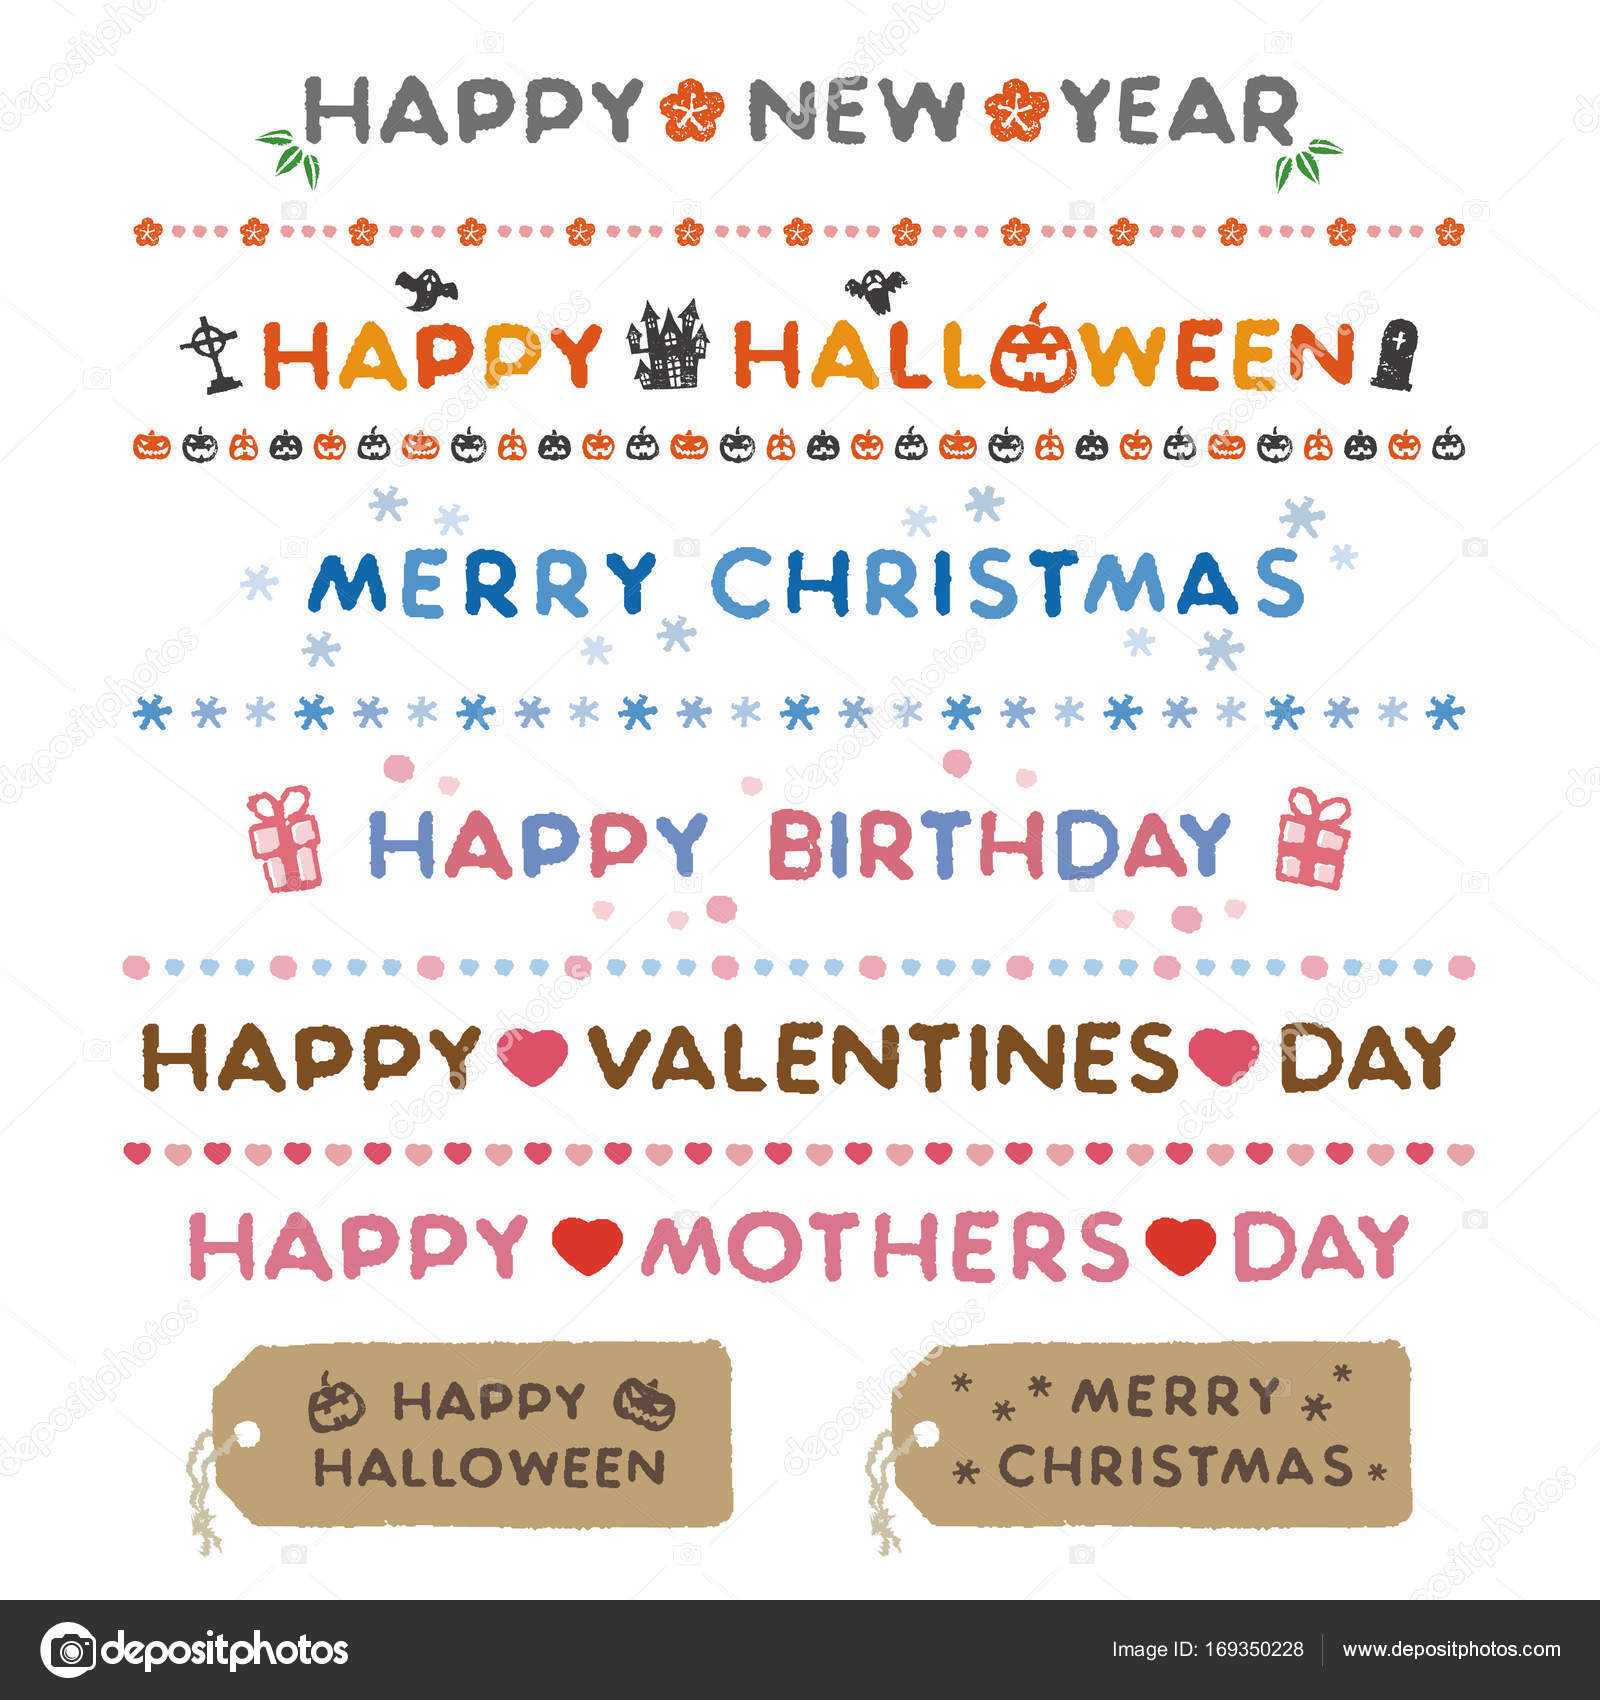 Holiday messages, Happy New Year, Halloween, Christmas, Birthday ...